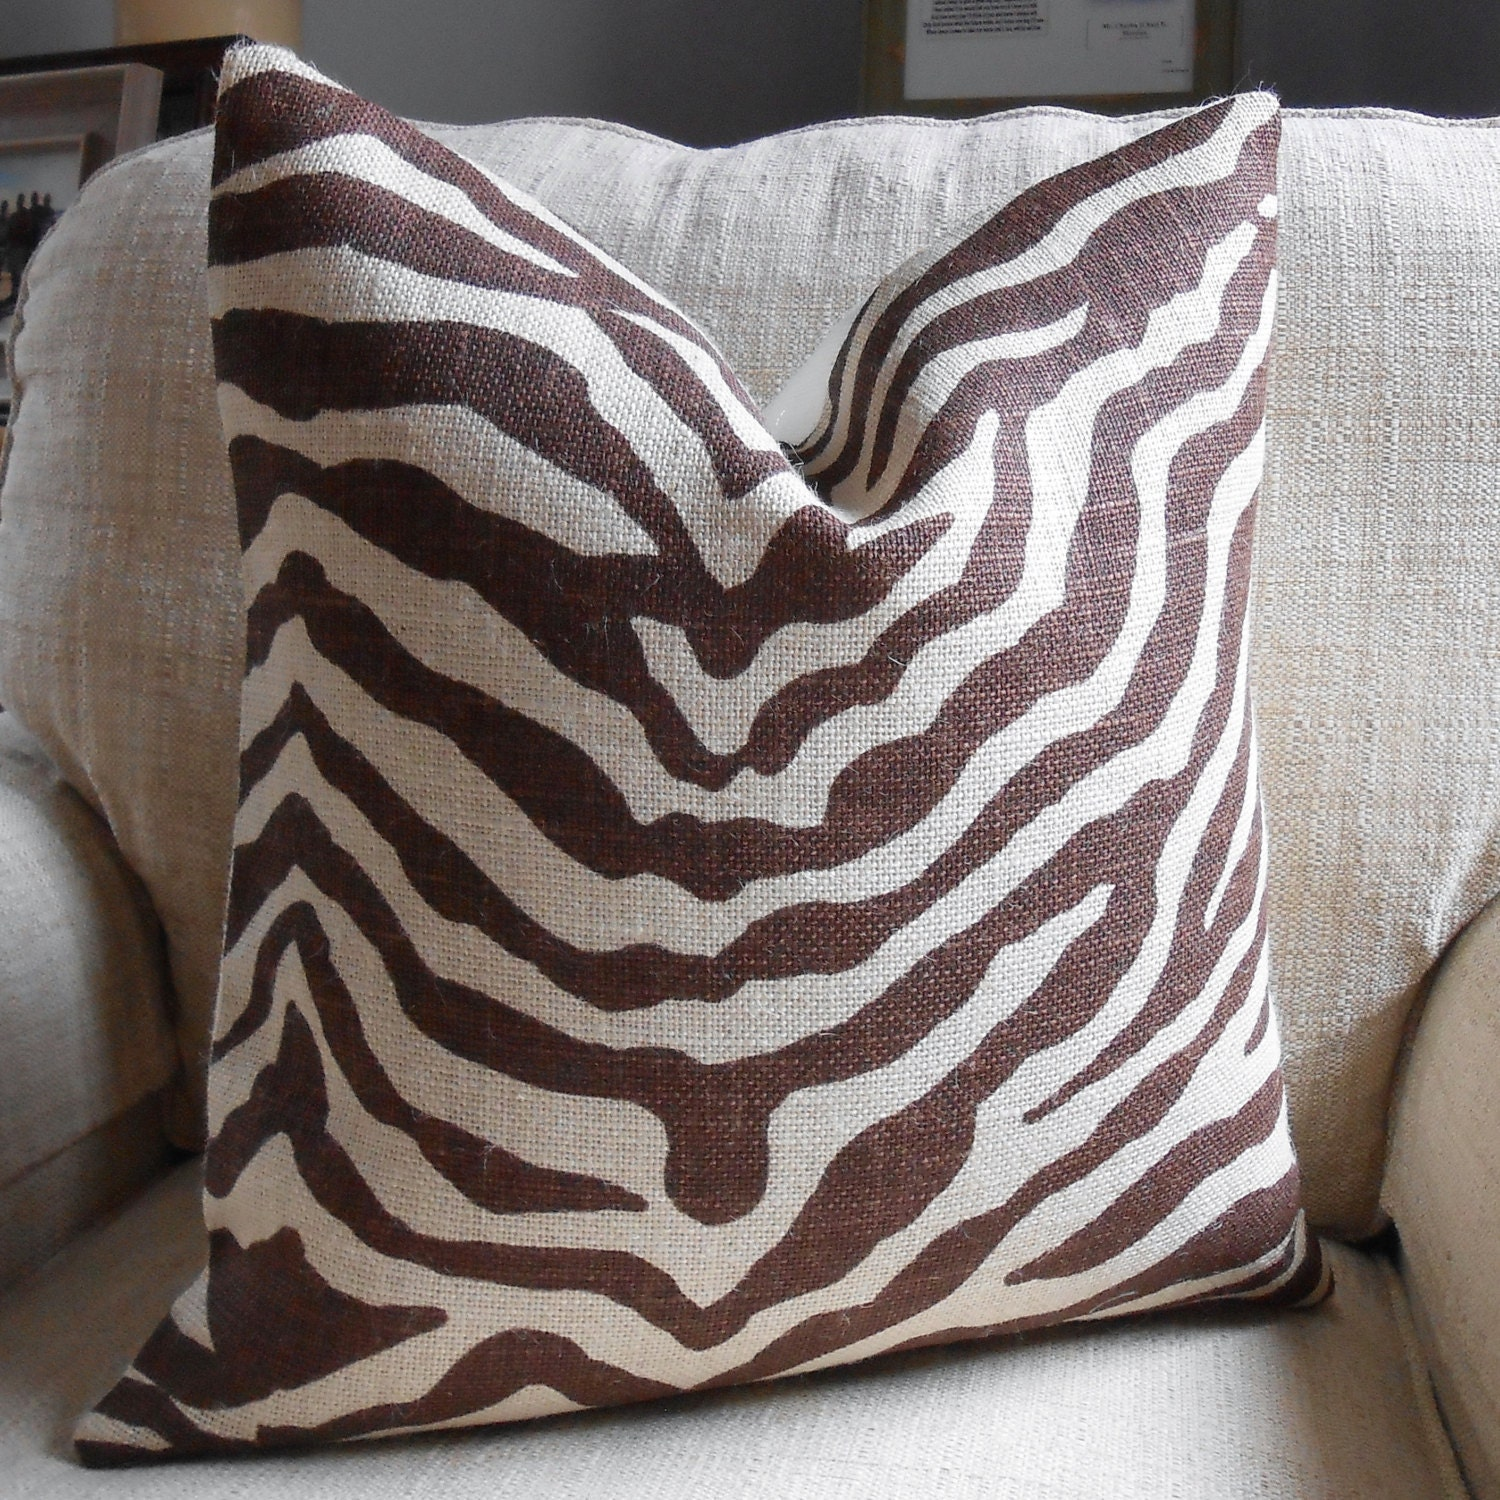 Animal Print Pillow Covers : Zebra animal print burlap pillow cover in brown by LowCountryHome